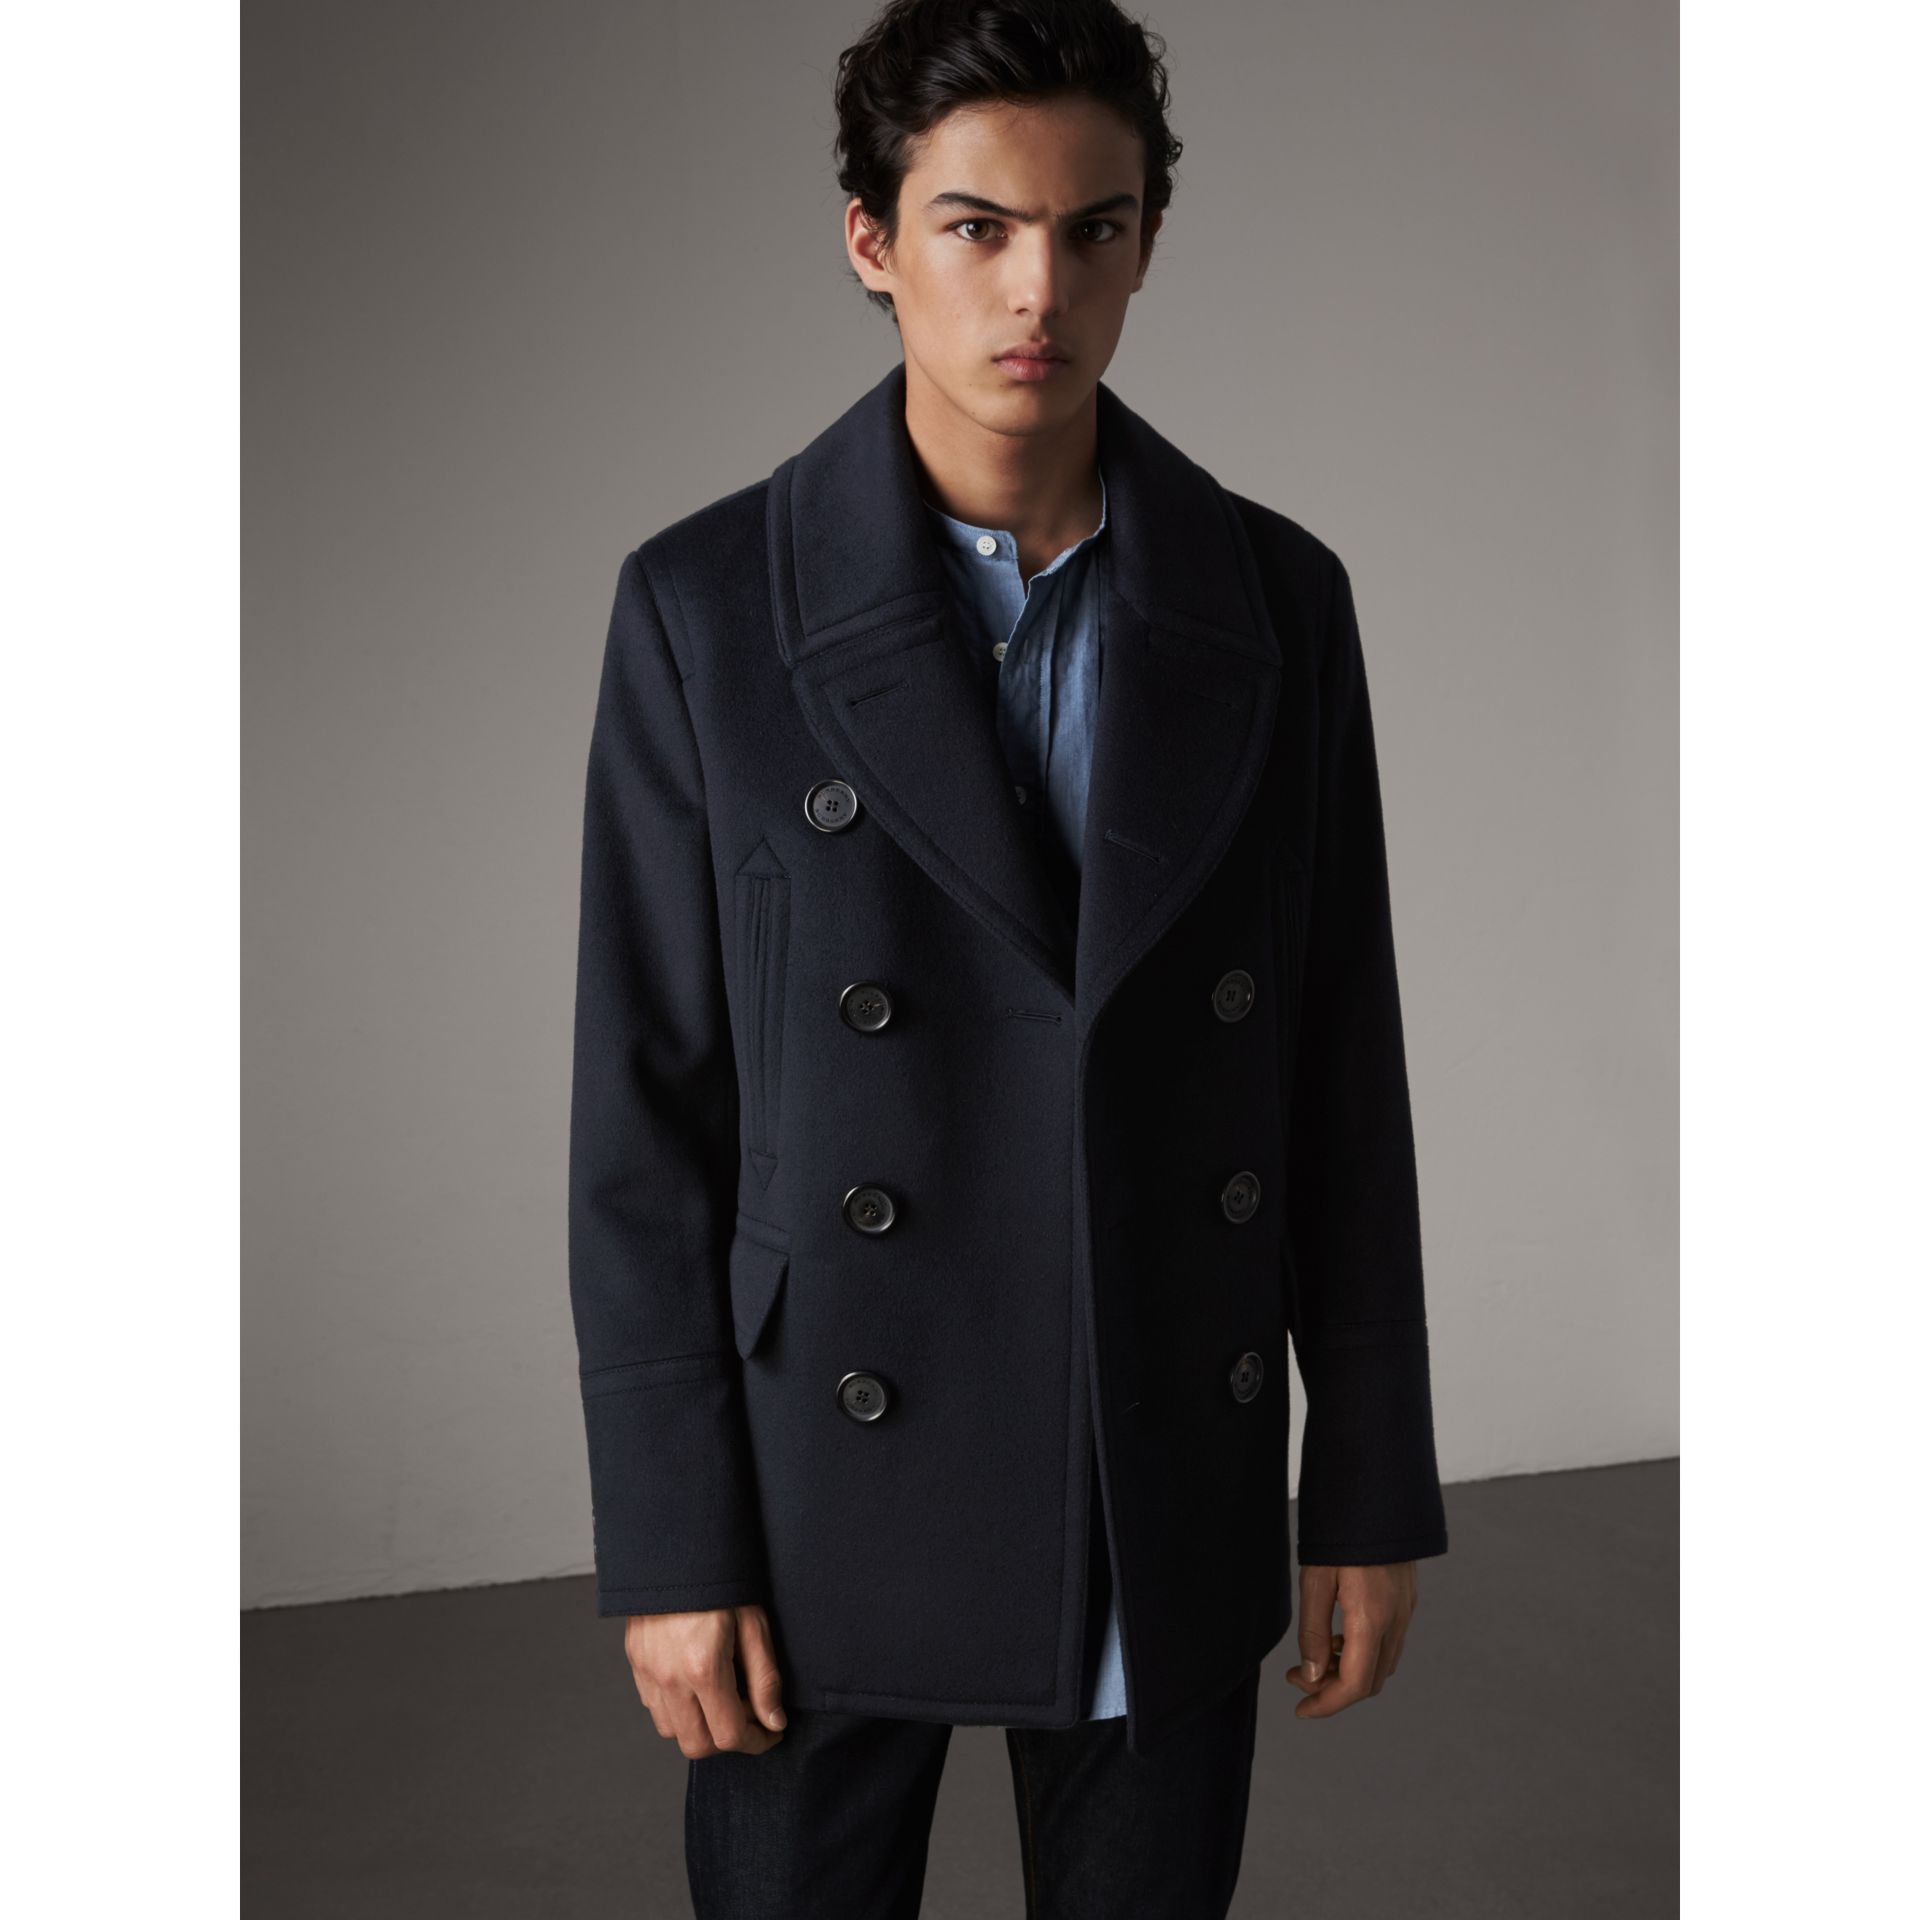 Wool Cashmere Pea Coat in Navy - Men | Burberry Australia - gallery image 1